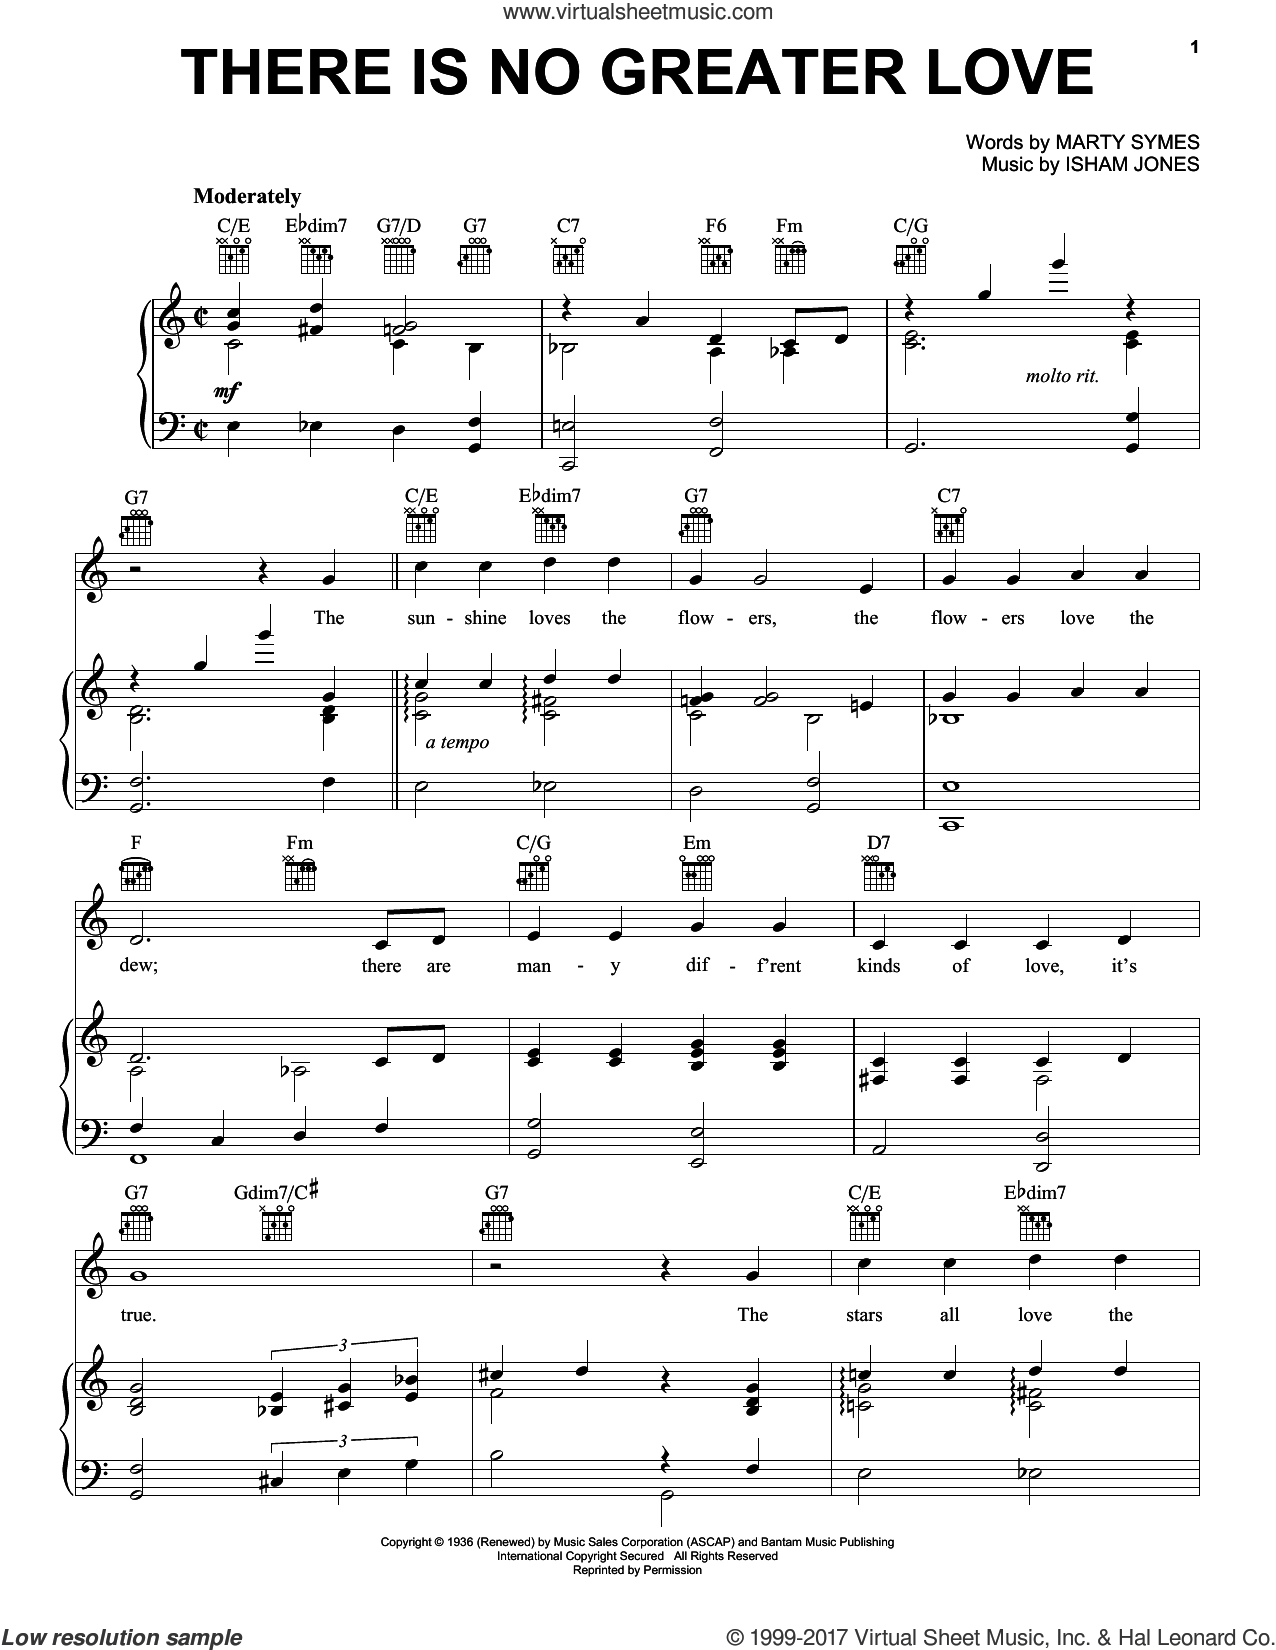 There Is No Greater Love sheet music for voice, piano or guitar by Marty Symes